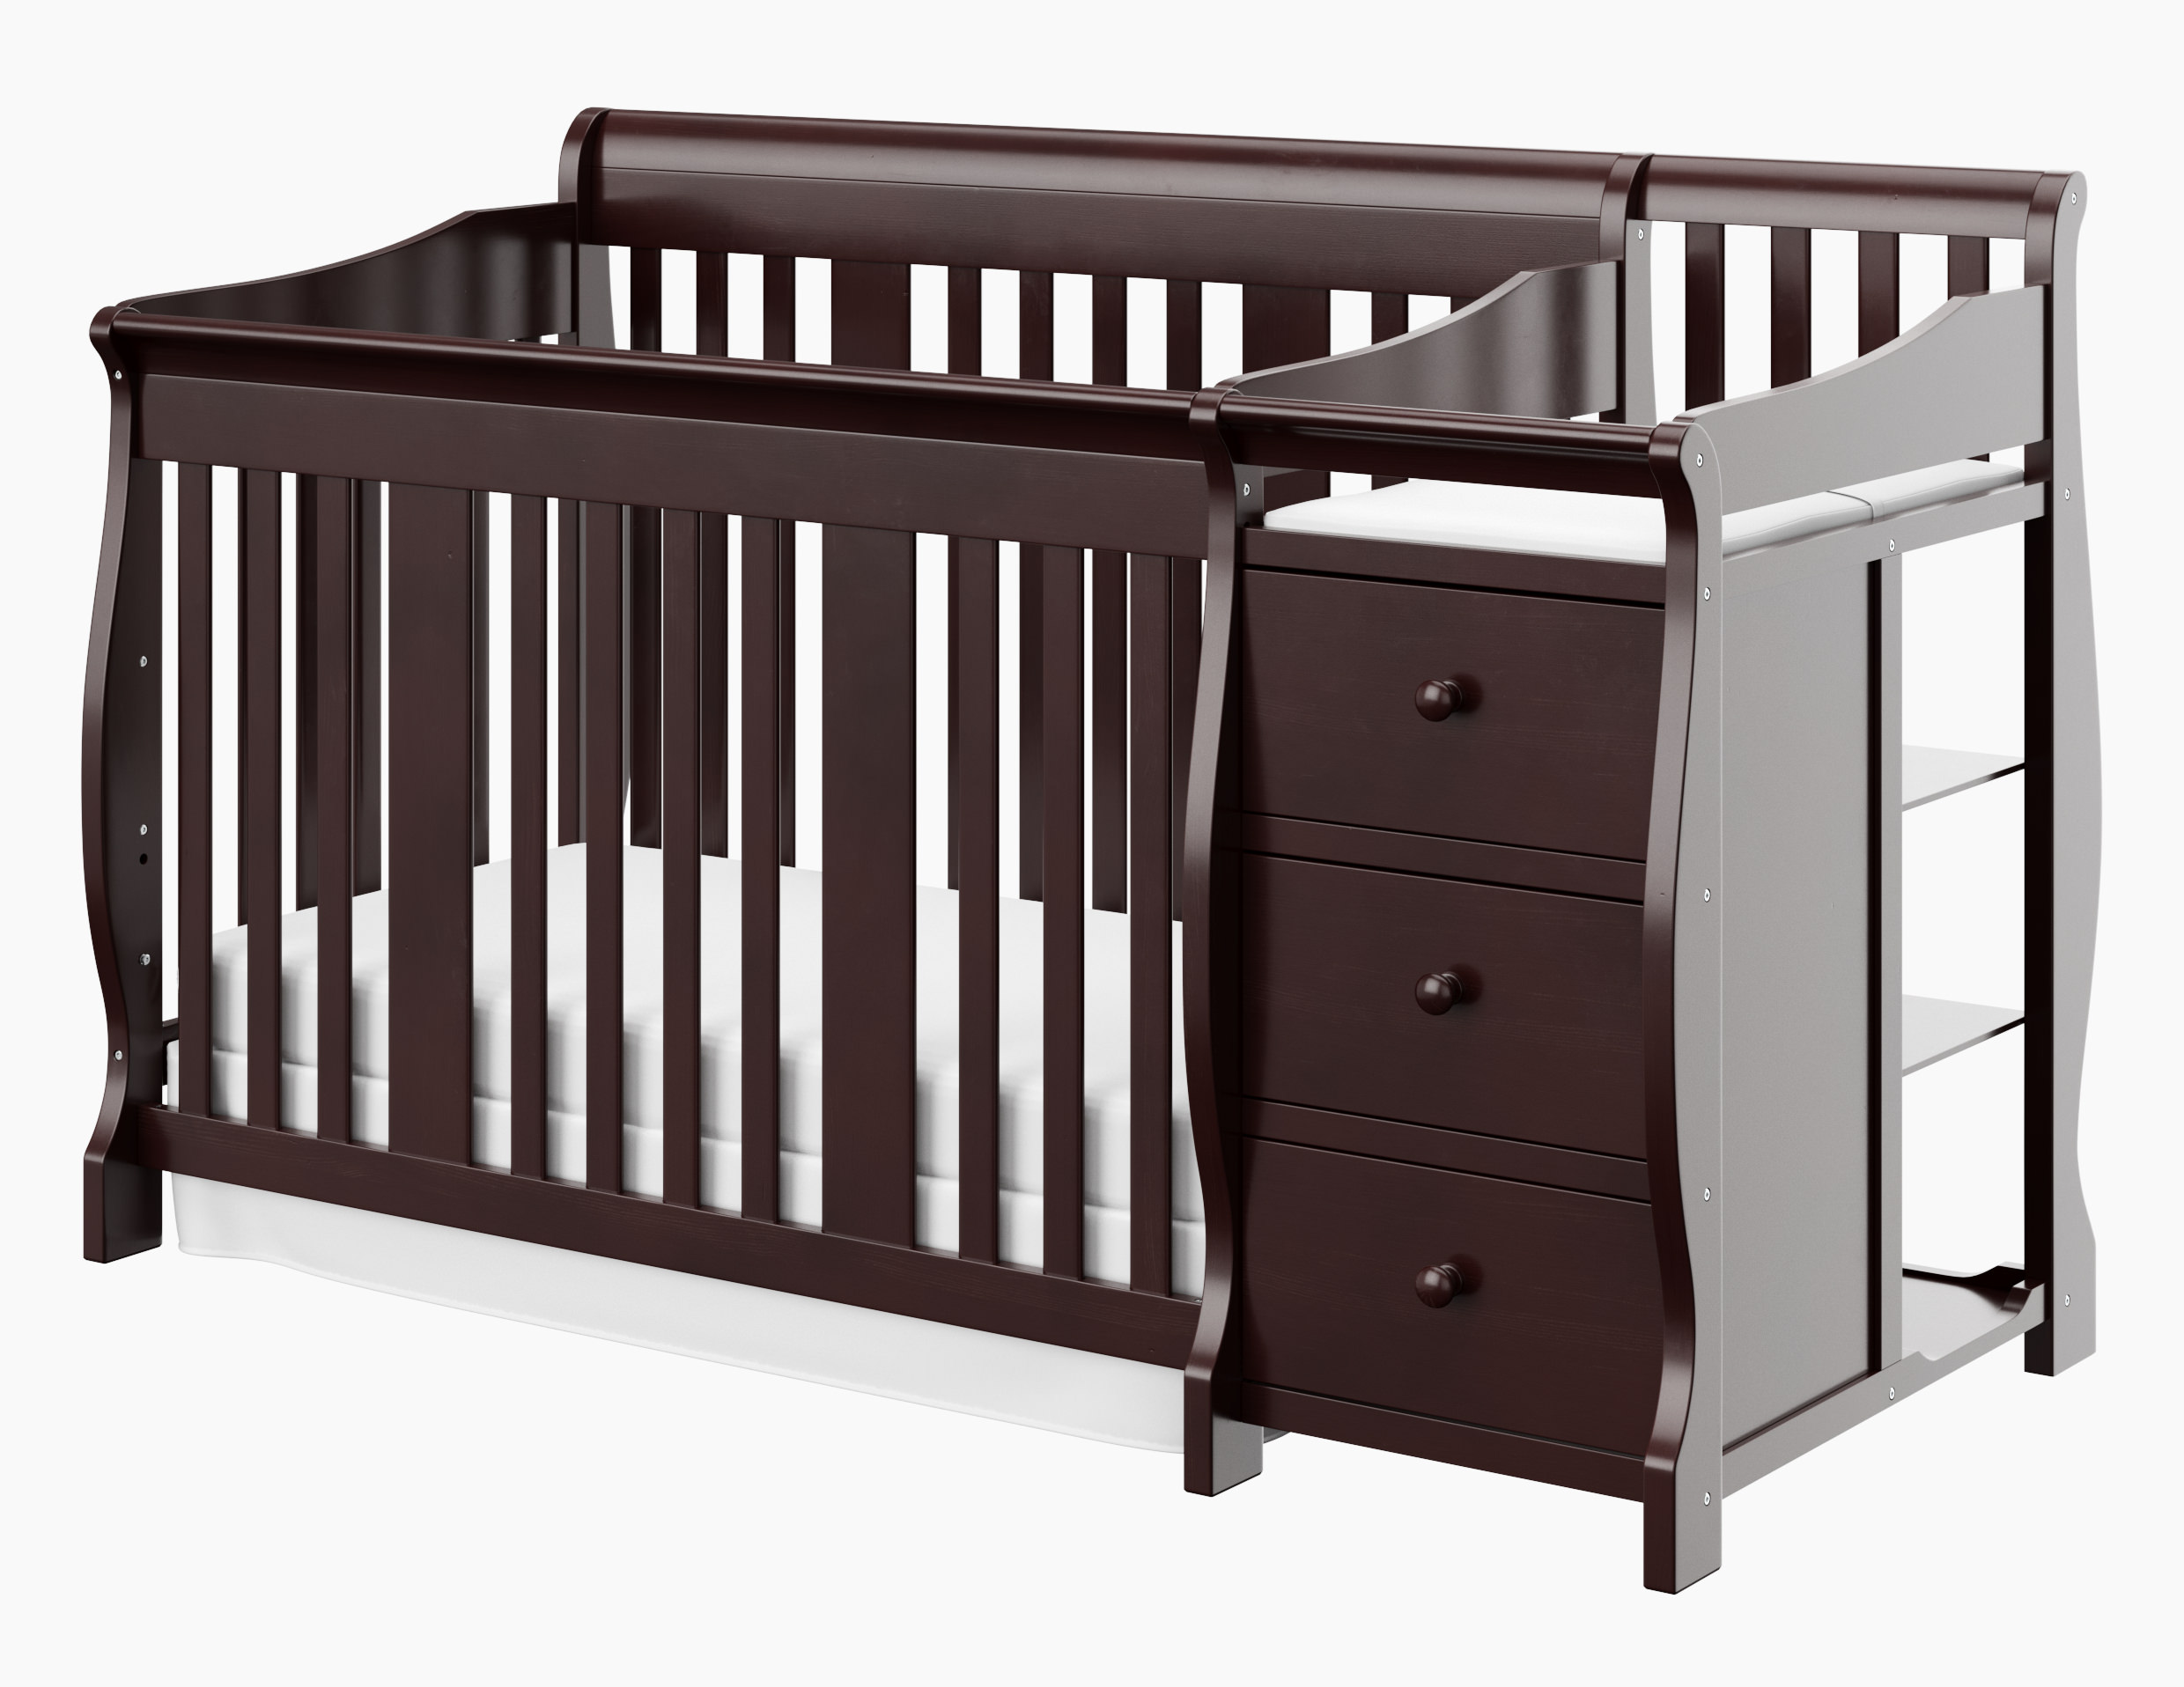 high beauteous smothery beds stork craft storkcraft crib furniture tuscany meridian bed convertible aiden in size full navy ar cribs new